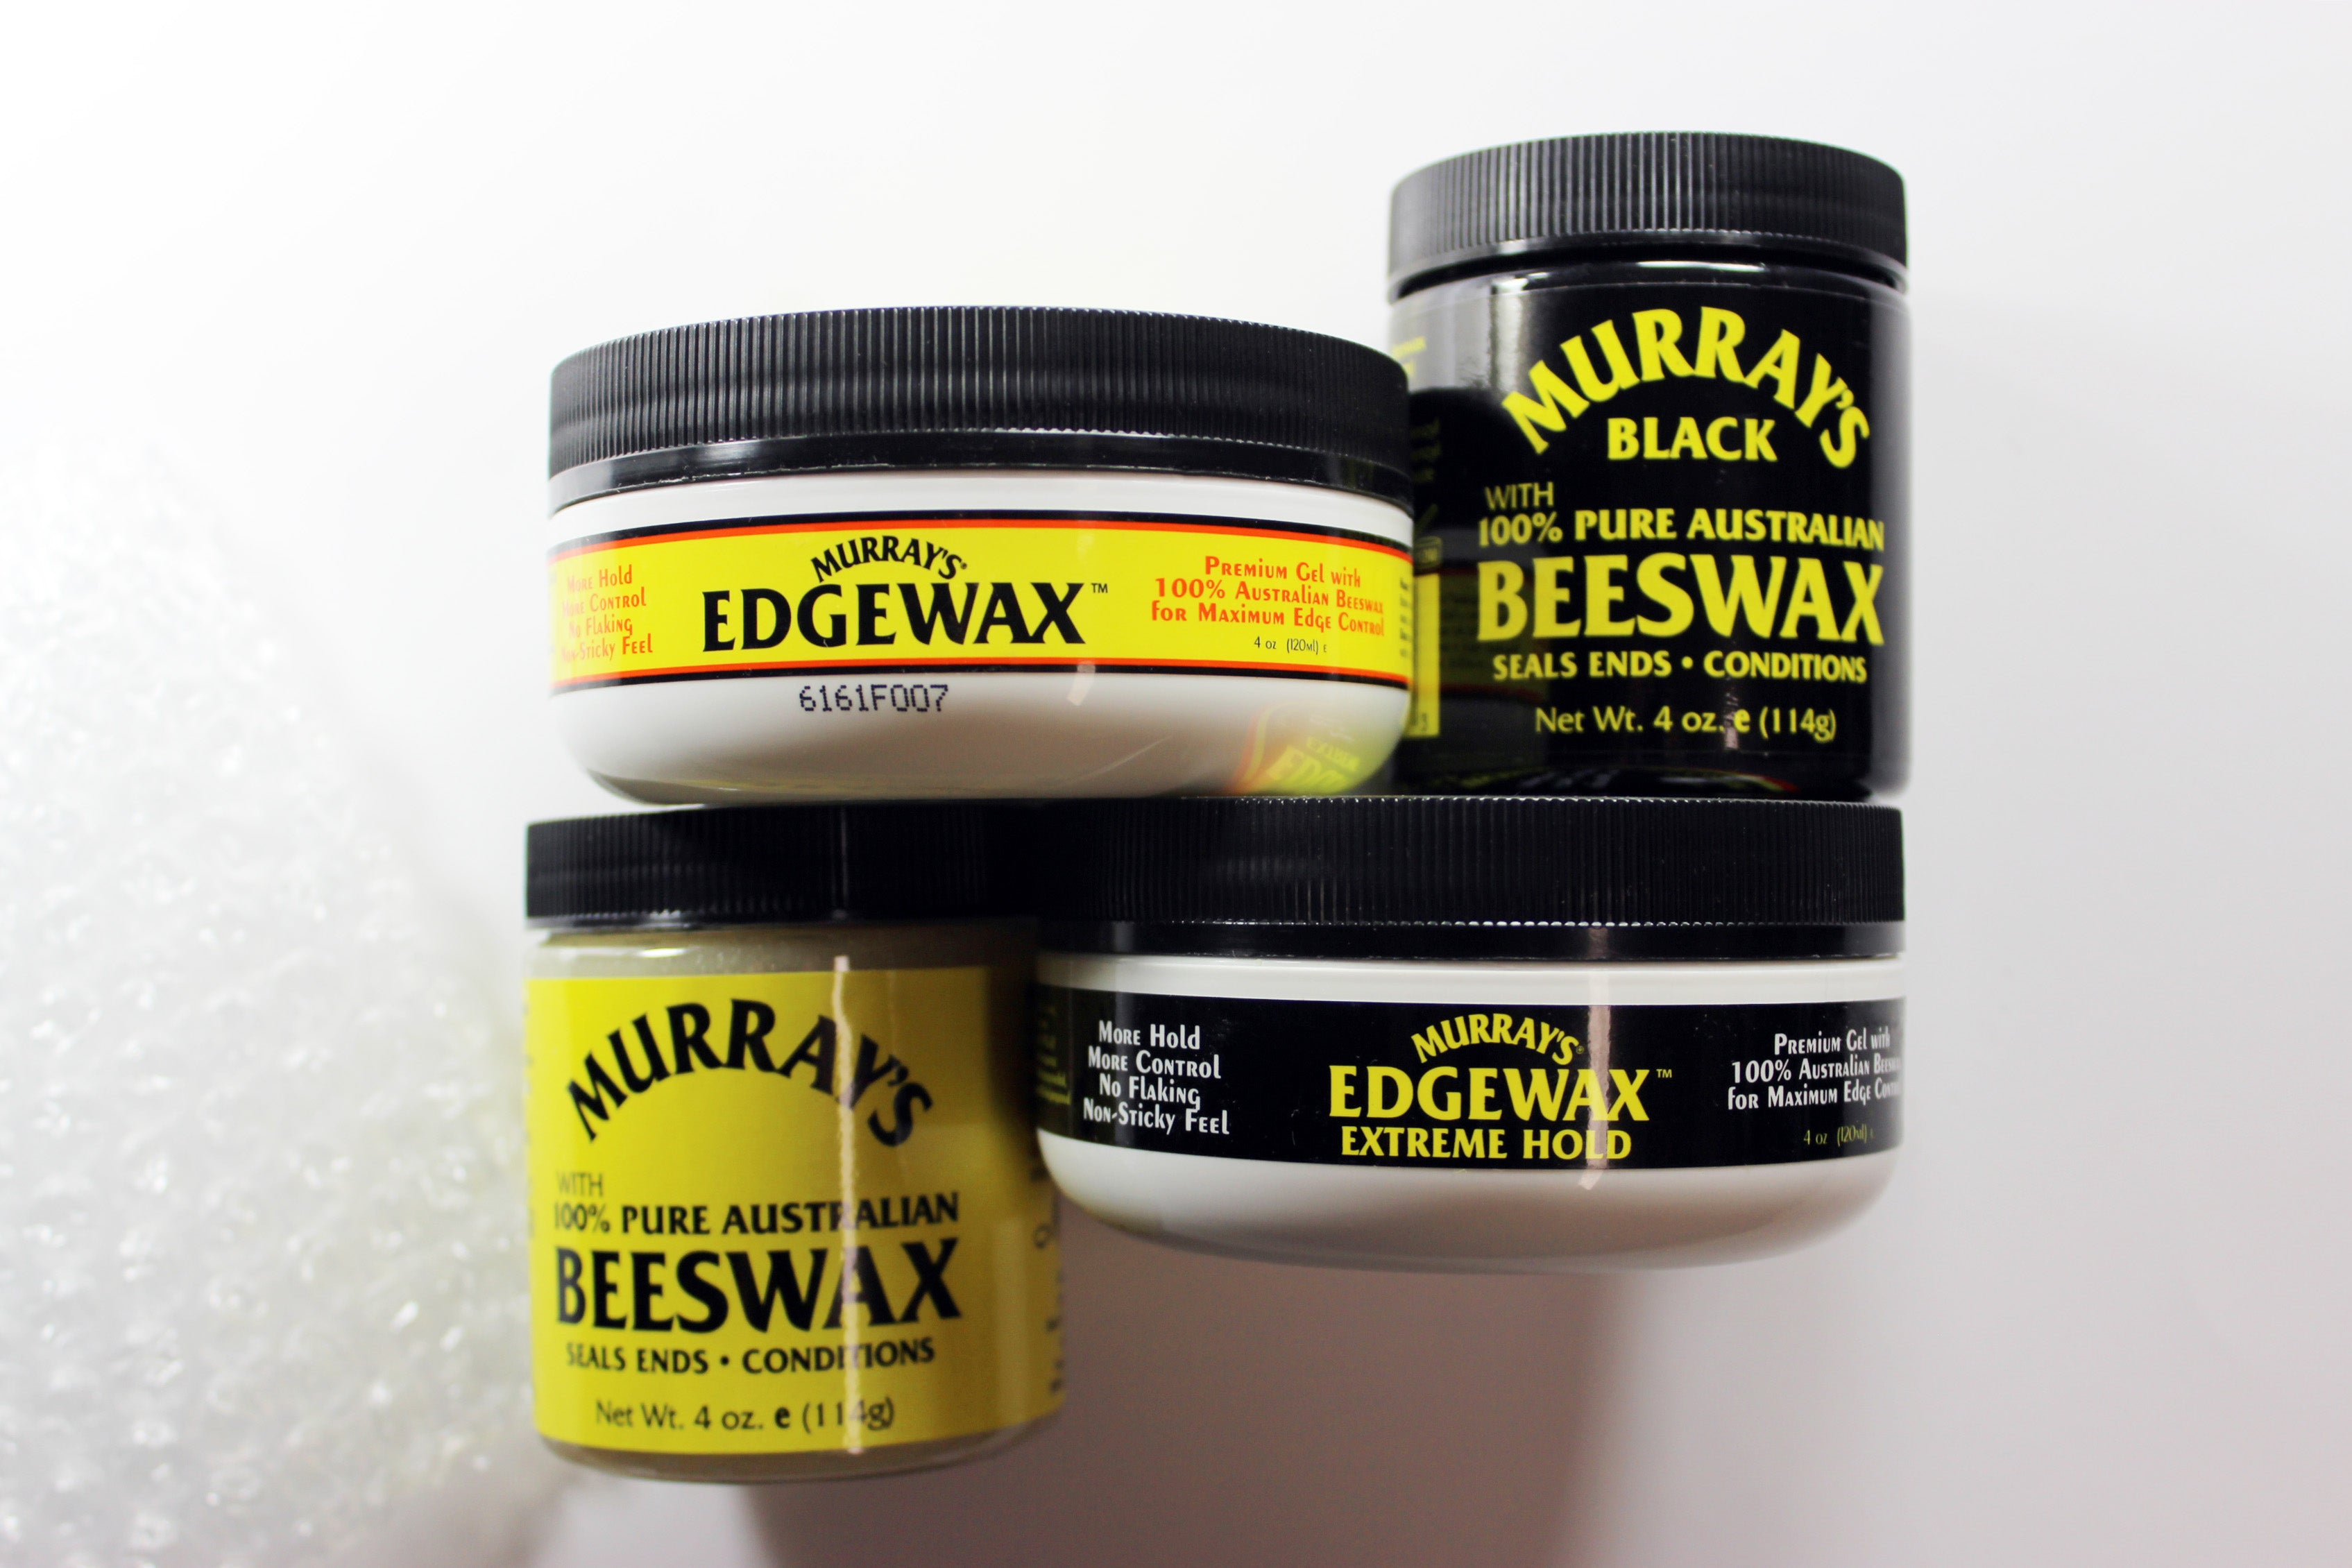 Murray's Hairstyling Products